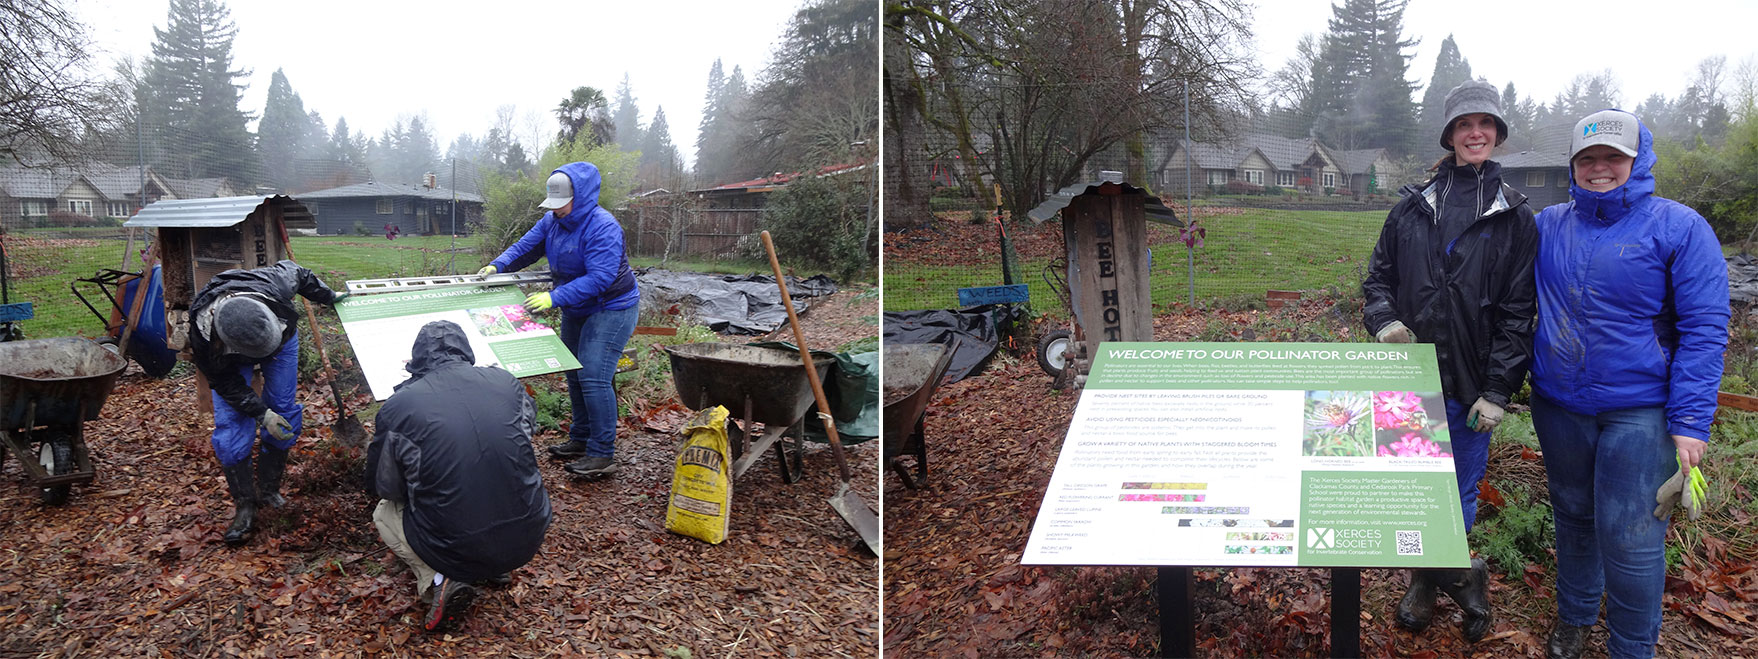 At left, adults install the interpretive sign made for the garden. At right, Carolyn and the author pose next to the sign.